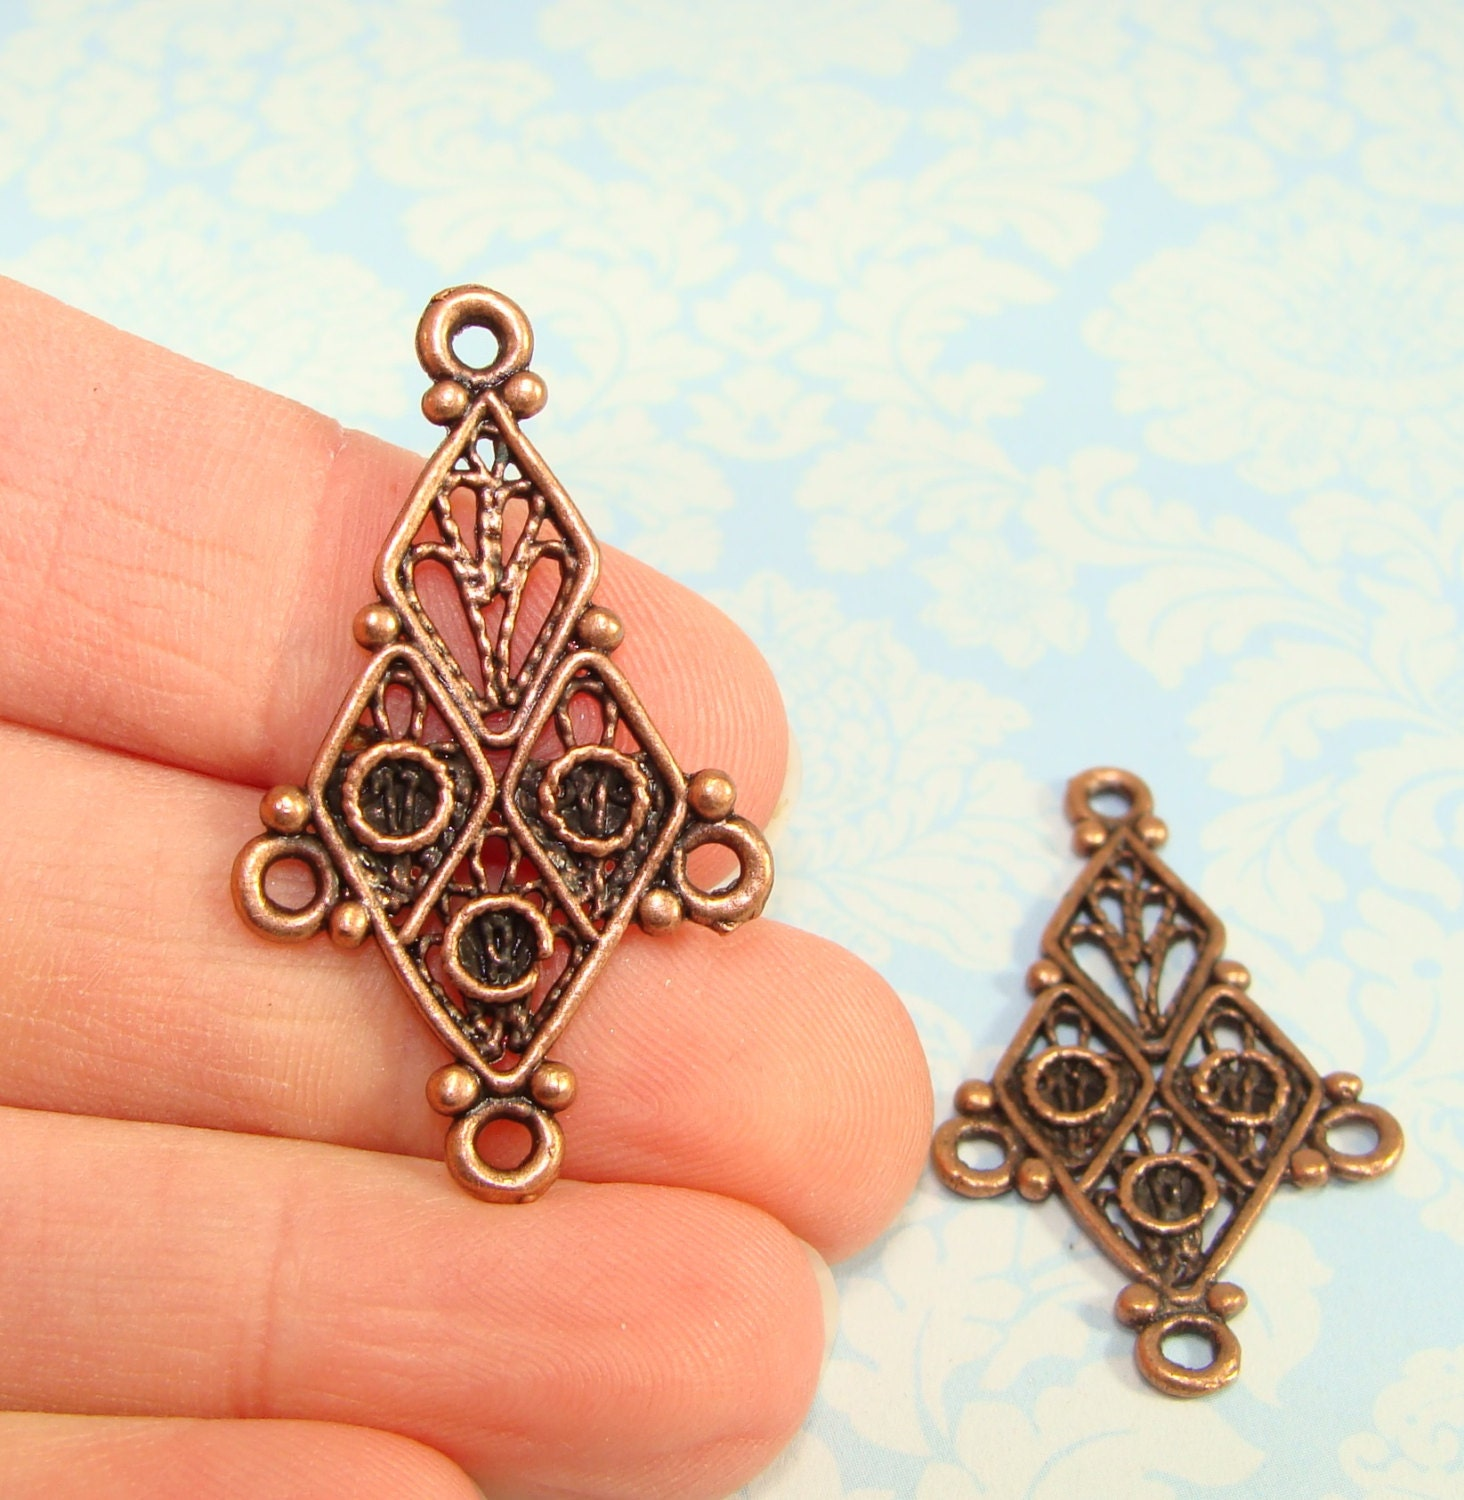 4 Chandelier Earring Parts Charms Components 2 PAIR Bronze Copper ...